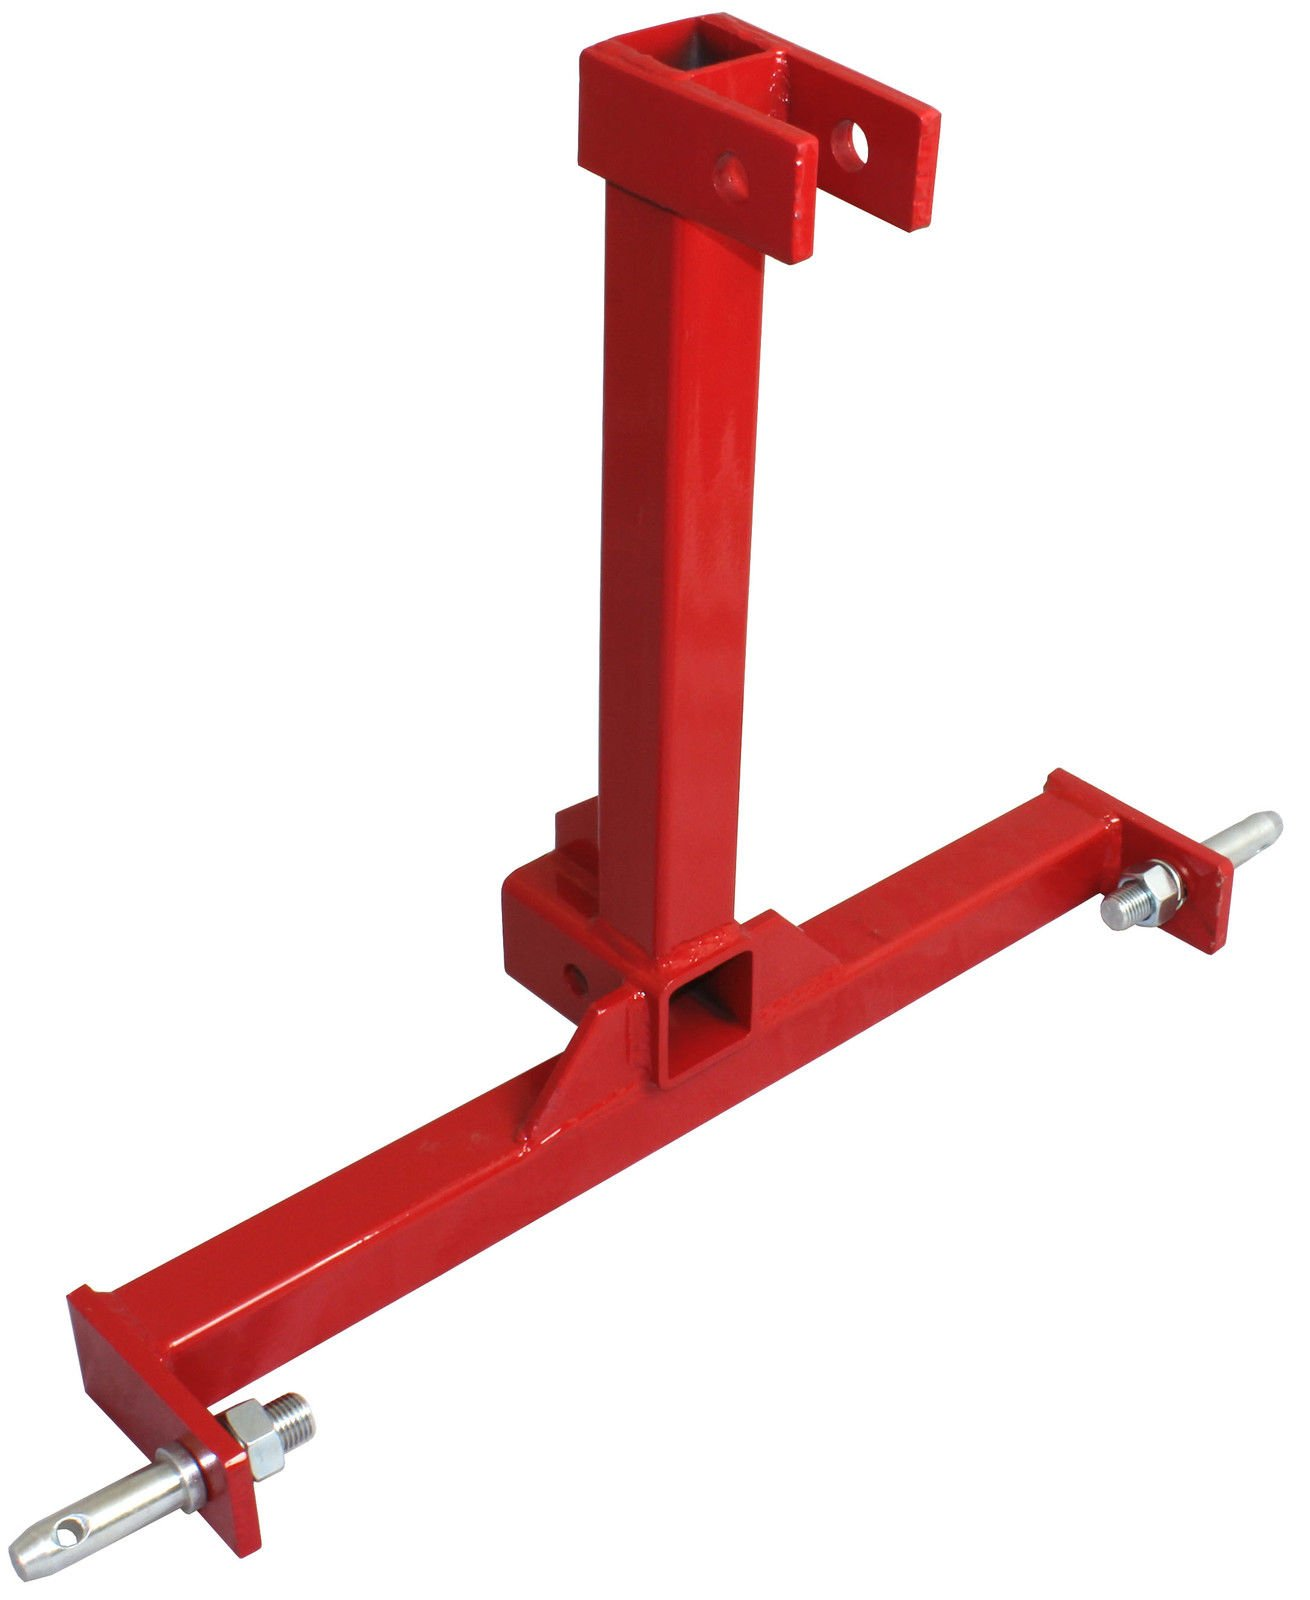 3 Point Trailer Hitch Adapter Category 1 Drawbar Tractor Trailer 2'' Hitch Receiver 3 Point Attachment